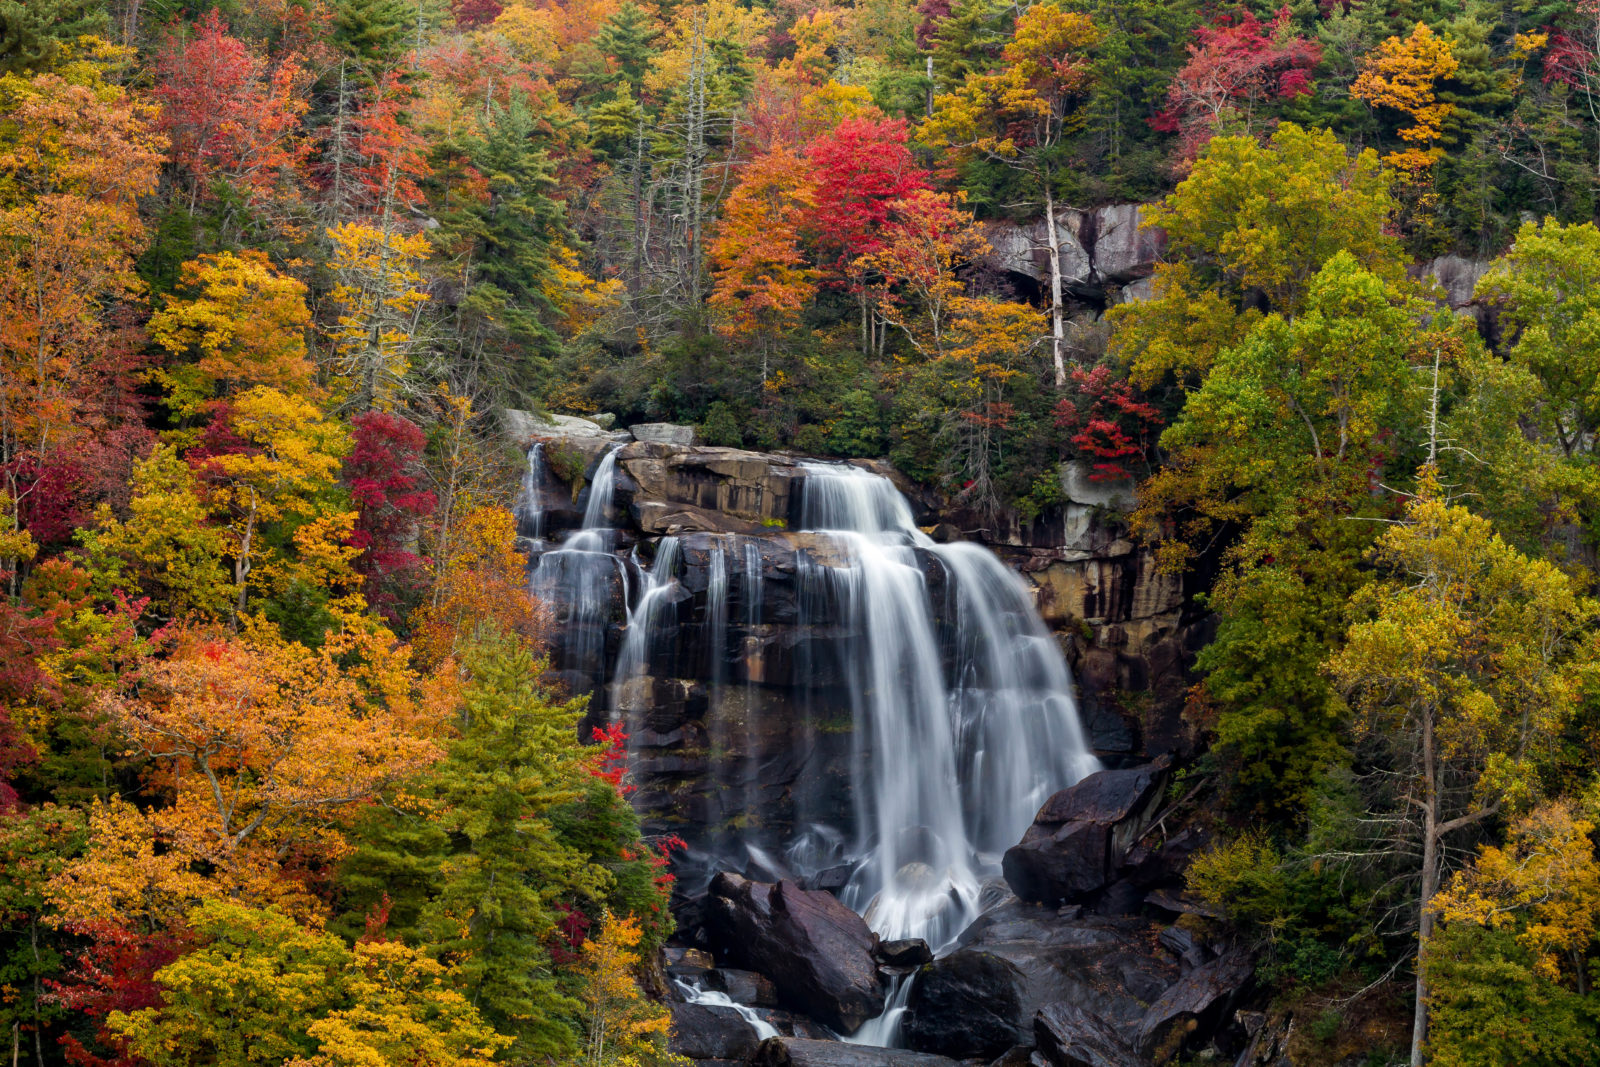 Upper Whitewater Falls